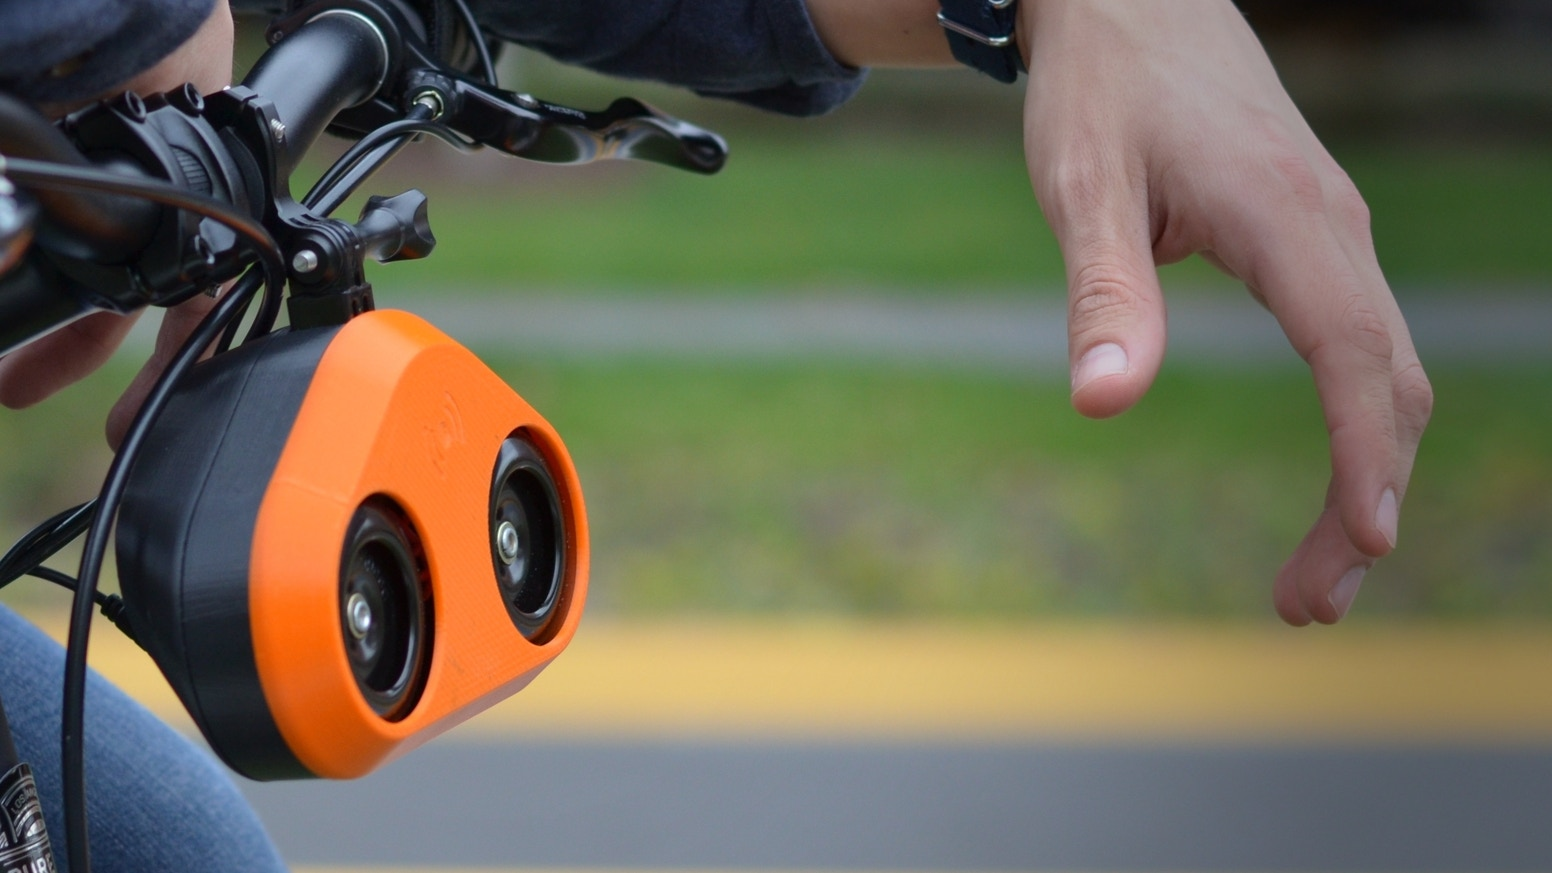 Make your ride safe with a bike horn that sounds like a car horn.